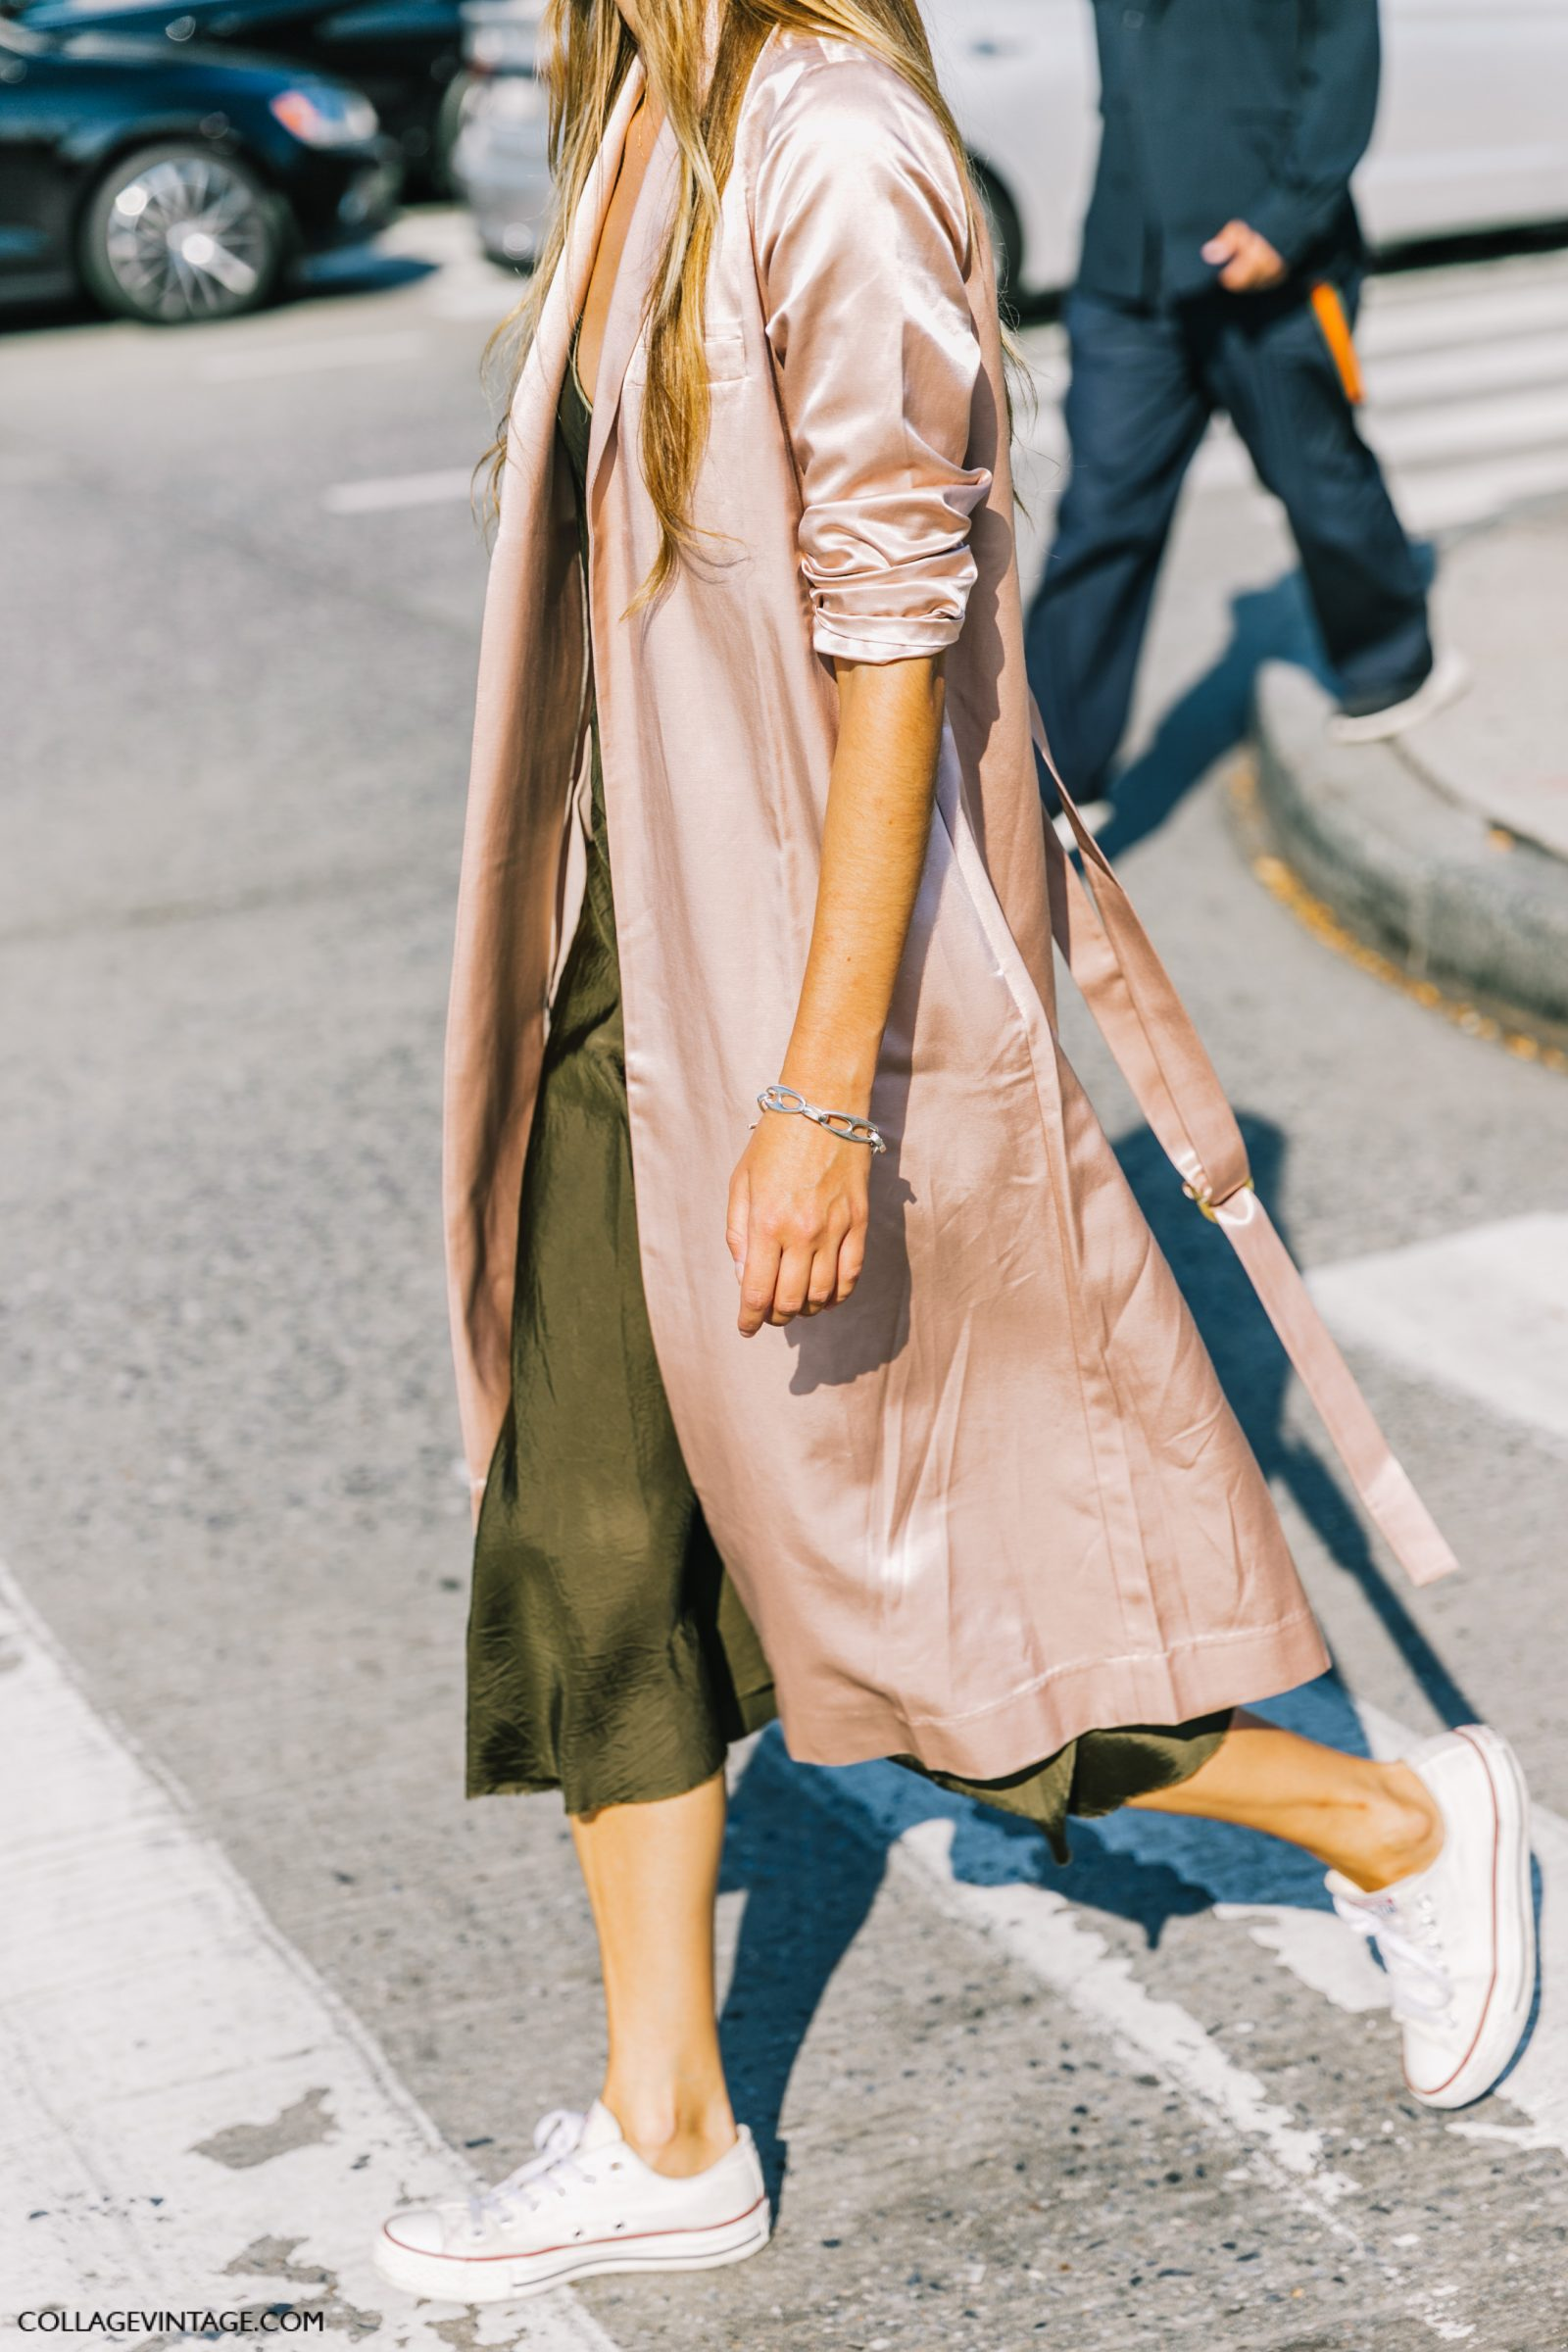 nyfw-new_york_fashion_week_ss17-street_style-outfits-collage_vintage-vintage-mansur_gavriel-rodarte-coach-152